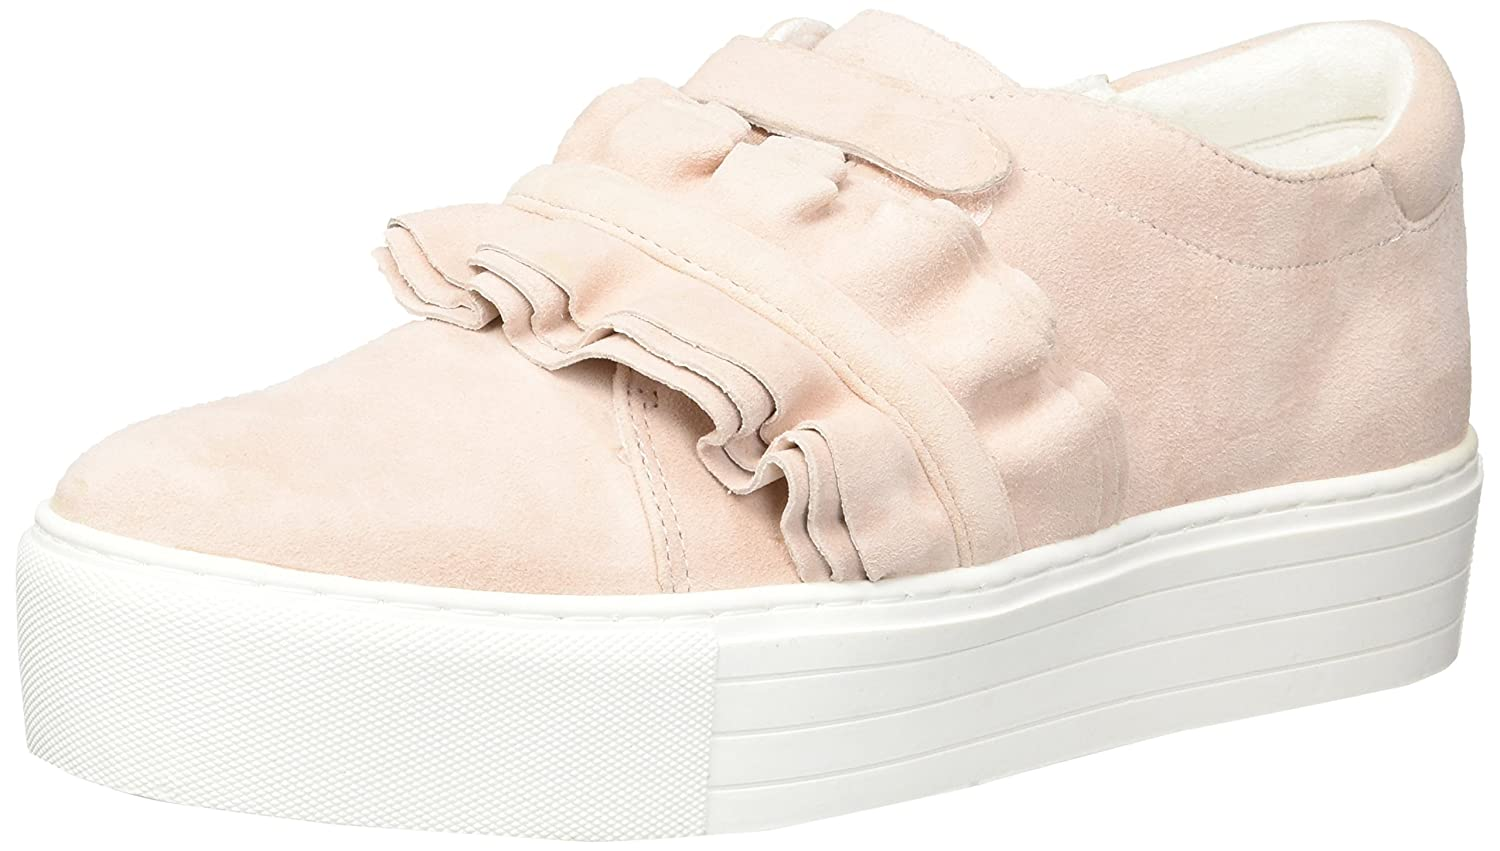 Kenneth Cole New Ruffle York Women's Ashlee Platform Ruffle New Detail Sneaker B079ZZX4Q5 8.5 B(M) US|Rose 78d86e